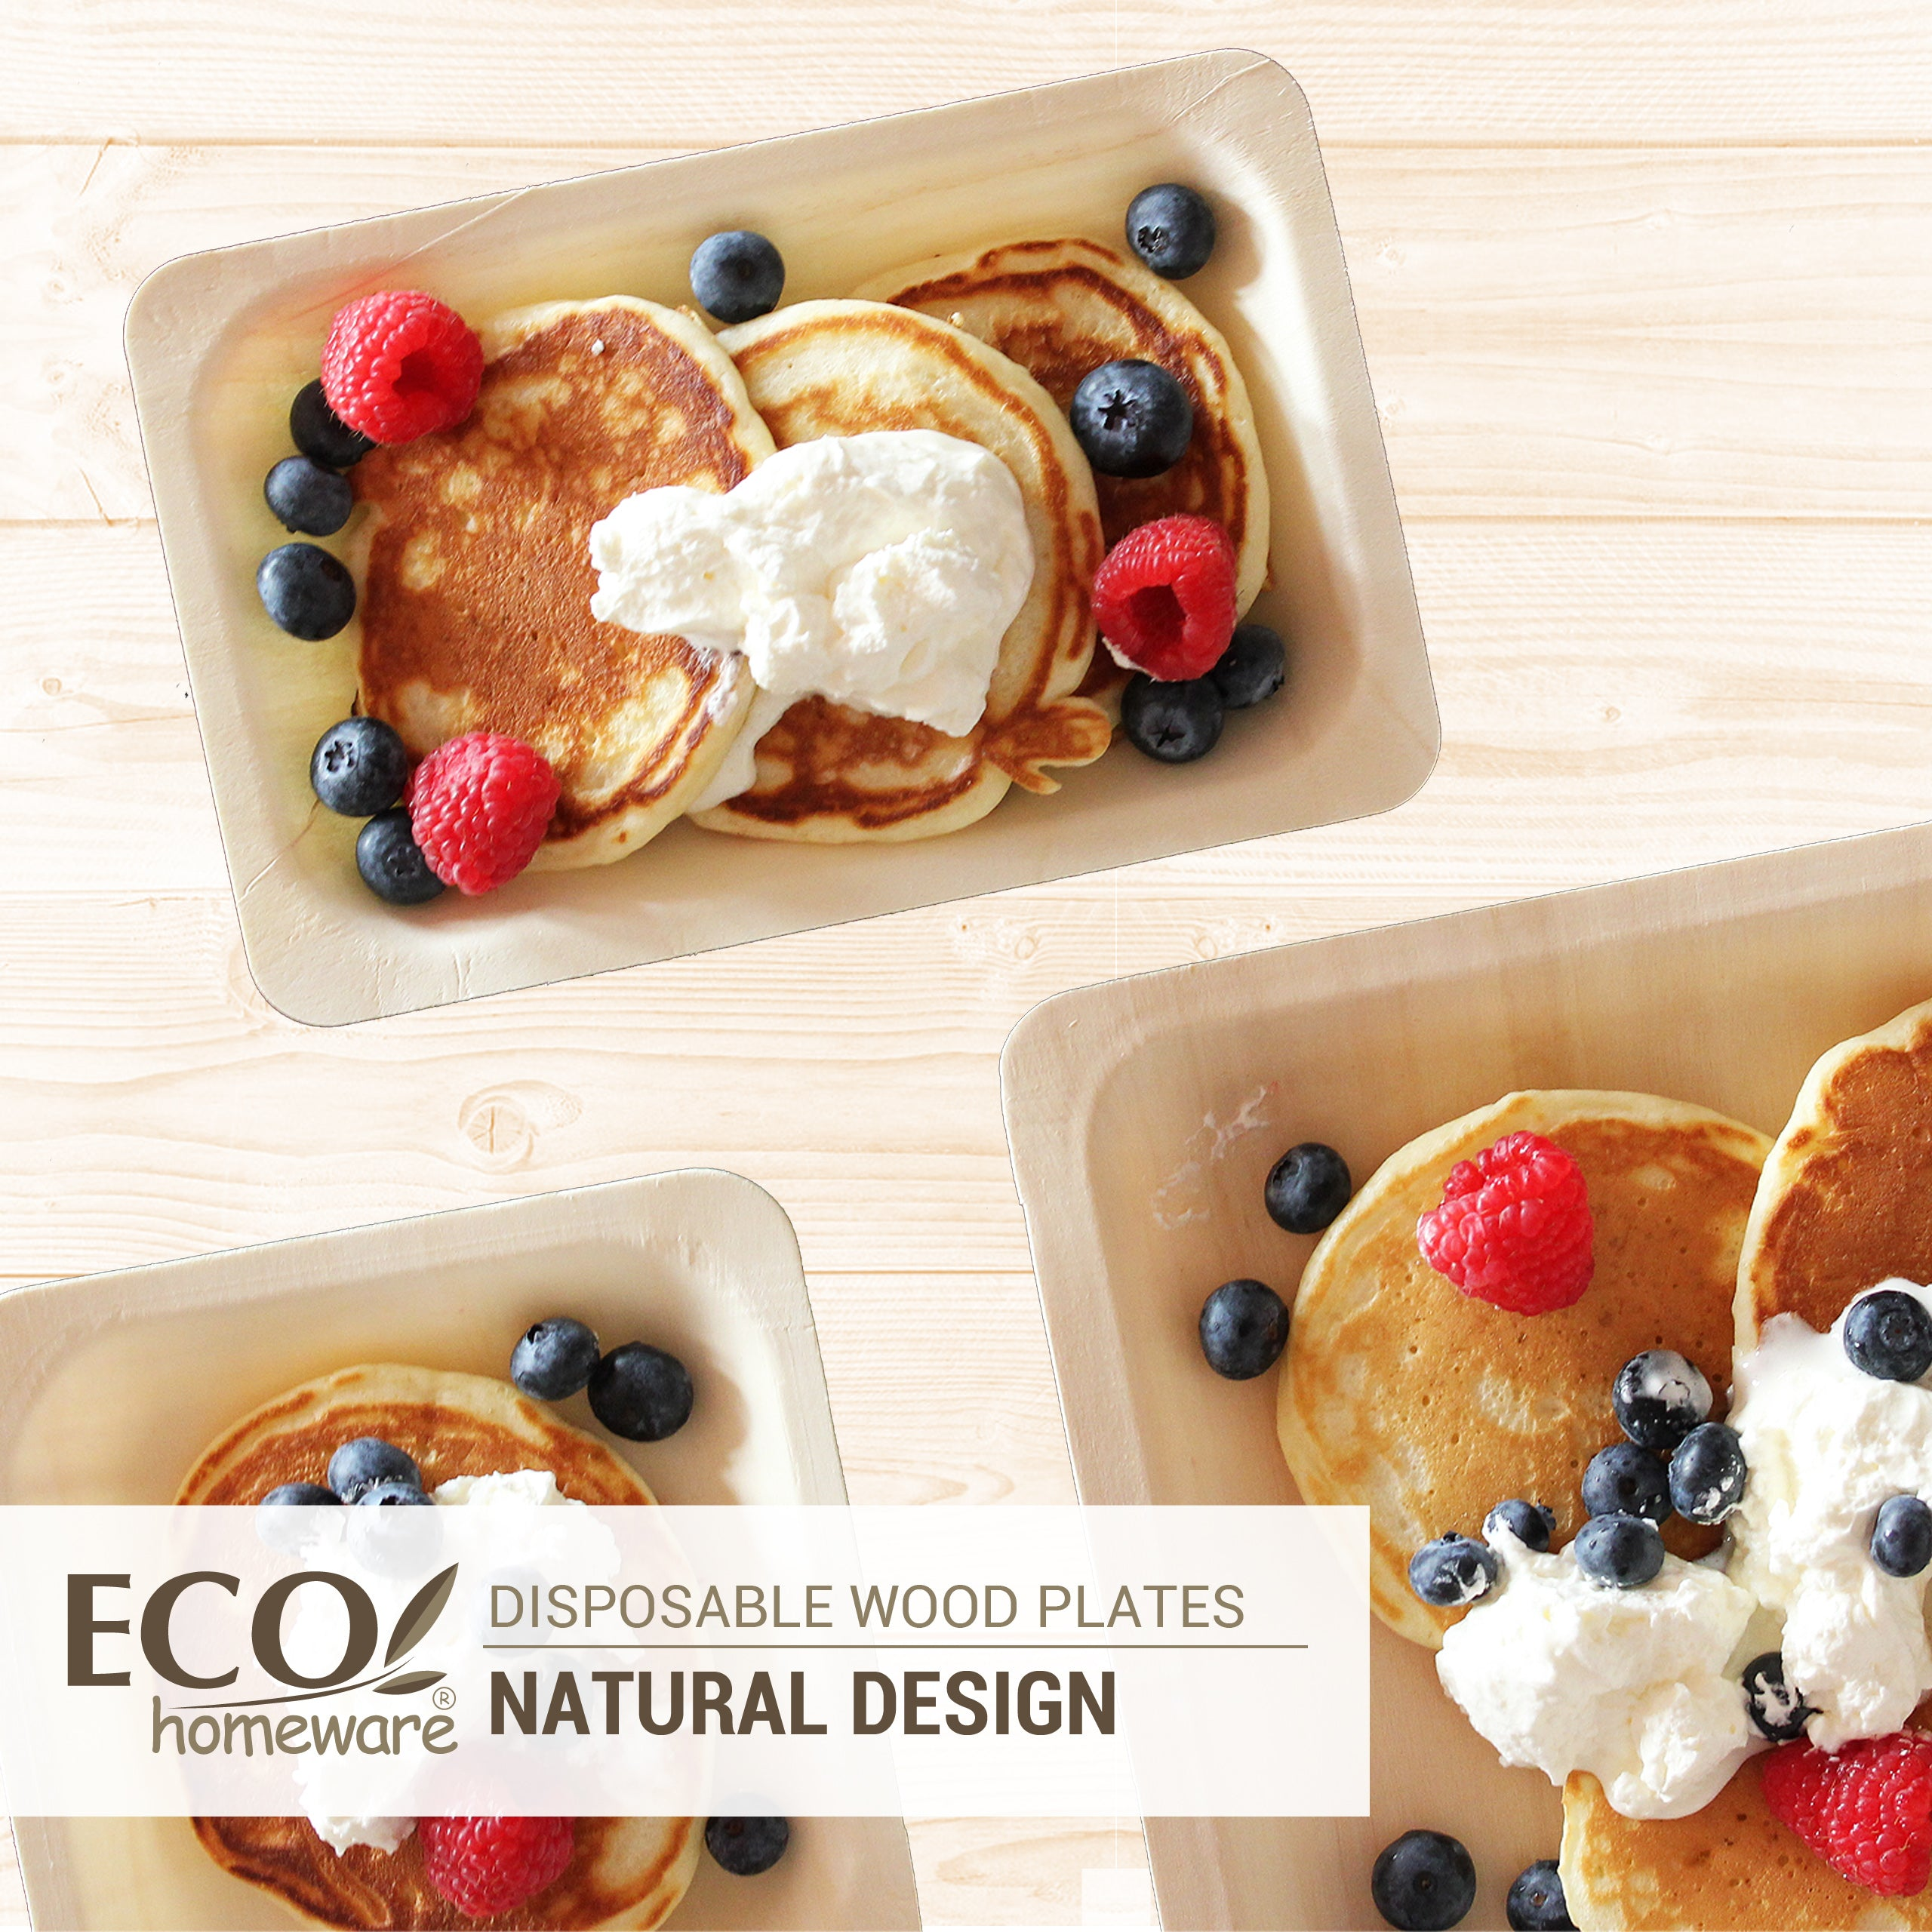 Disposable Wood Plates